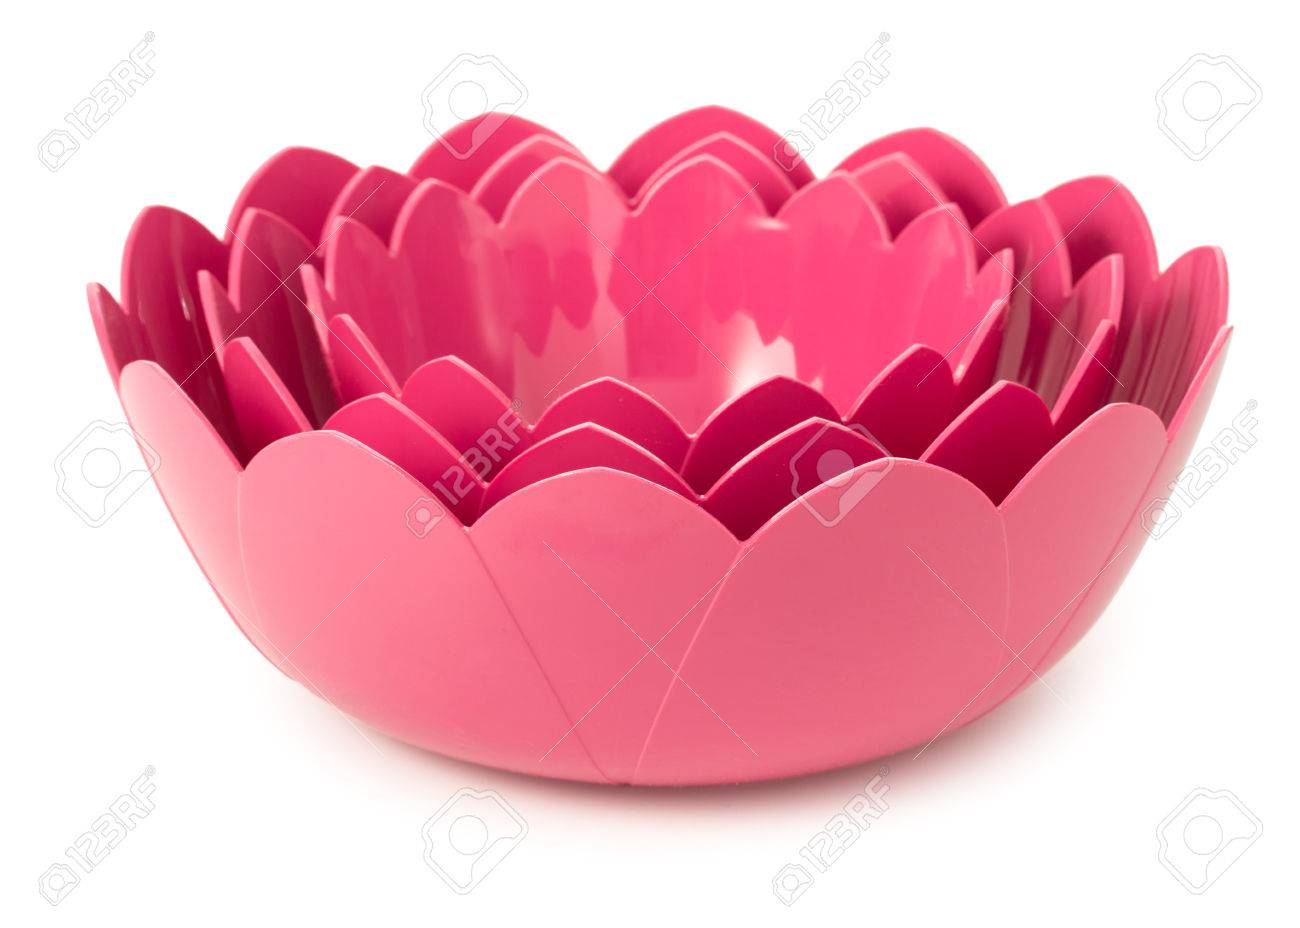 Set Of 3 Pink Plastic Bowls Made In Shape Of Flowers Of Lotus